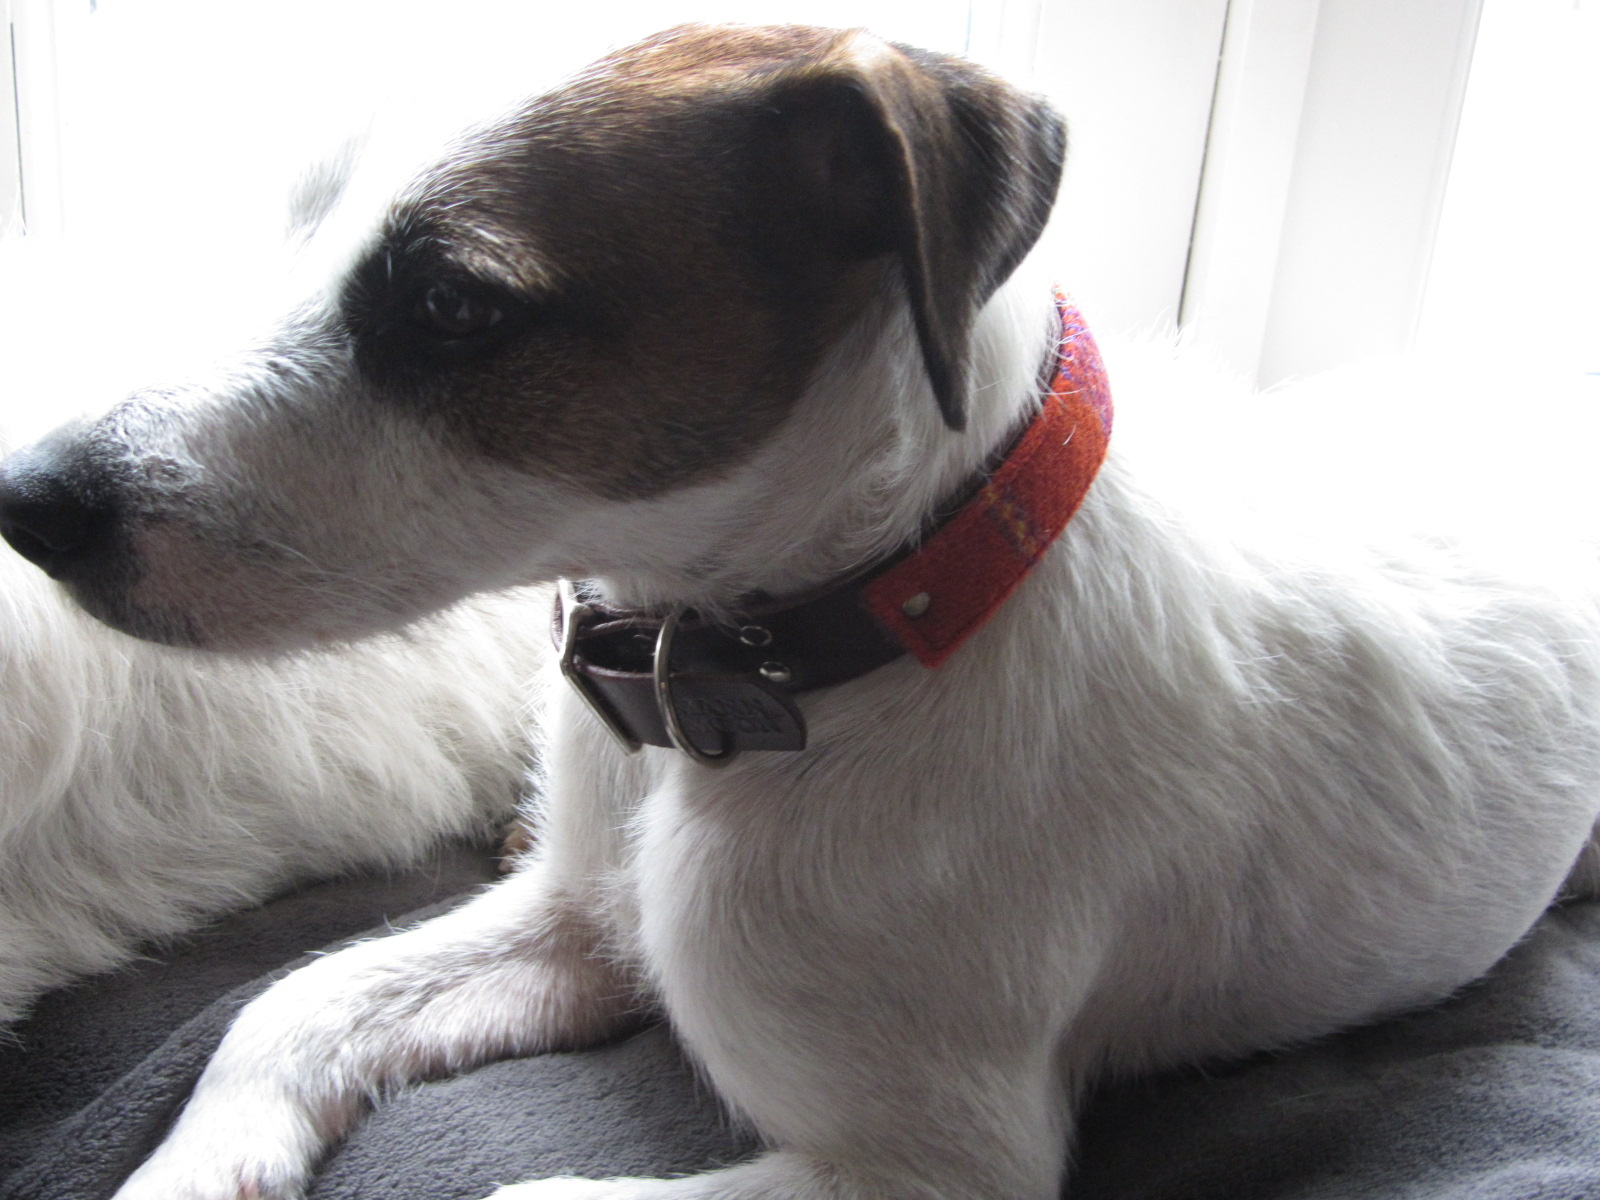 Momo the Jack Russel terrier in his Harris tweed and leather collar in Belgium